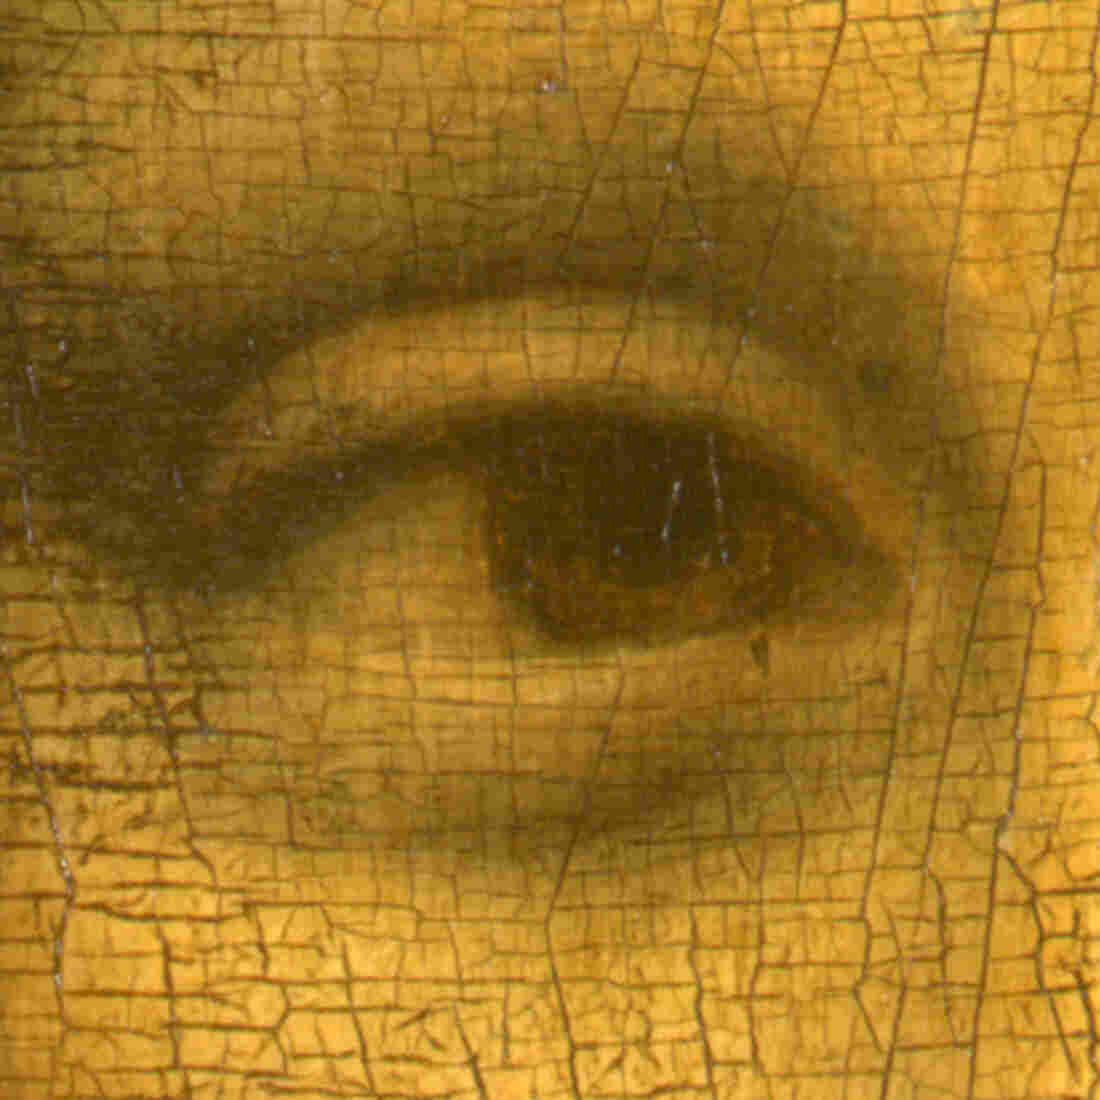 """The right eye of Leonardo da Vinci's """"Mona Lisa."""" On Aug. 21, 1911, the then-little-known painting was stolen from the wall of the Louvre in Paris. And a legend was born."""